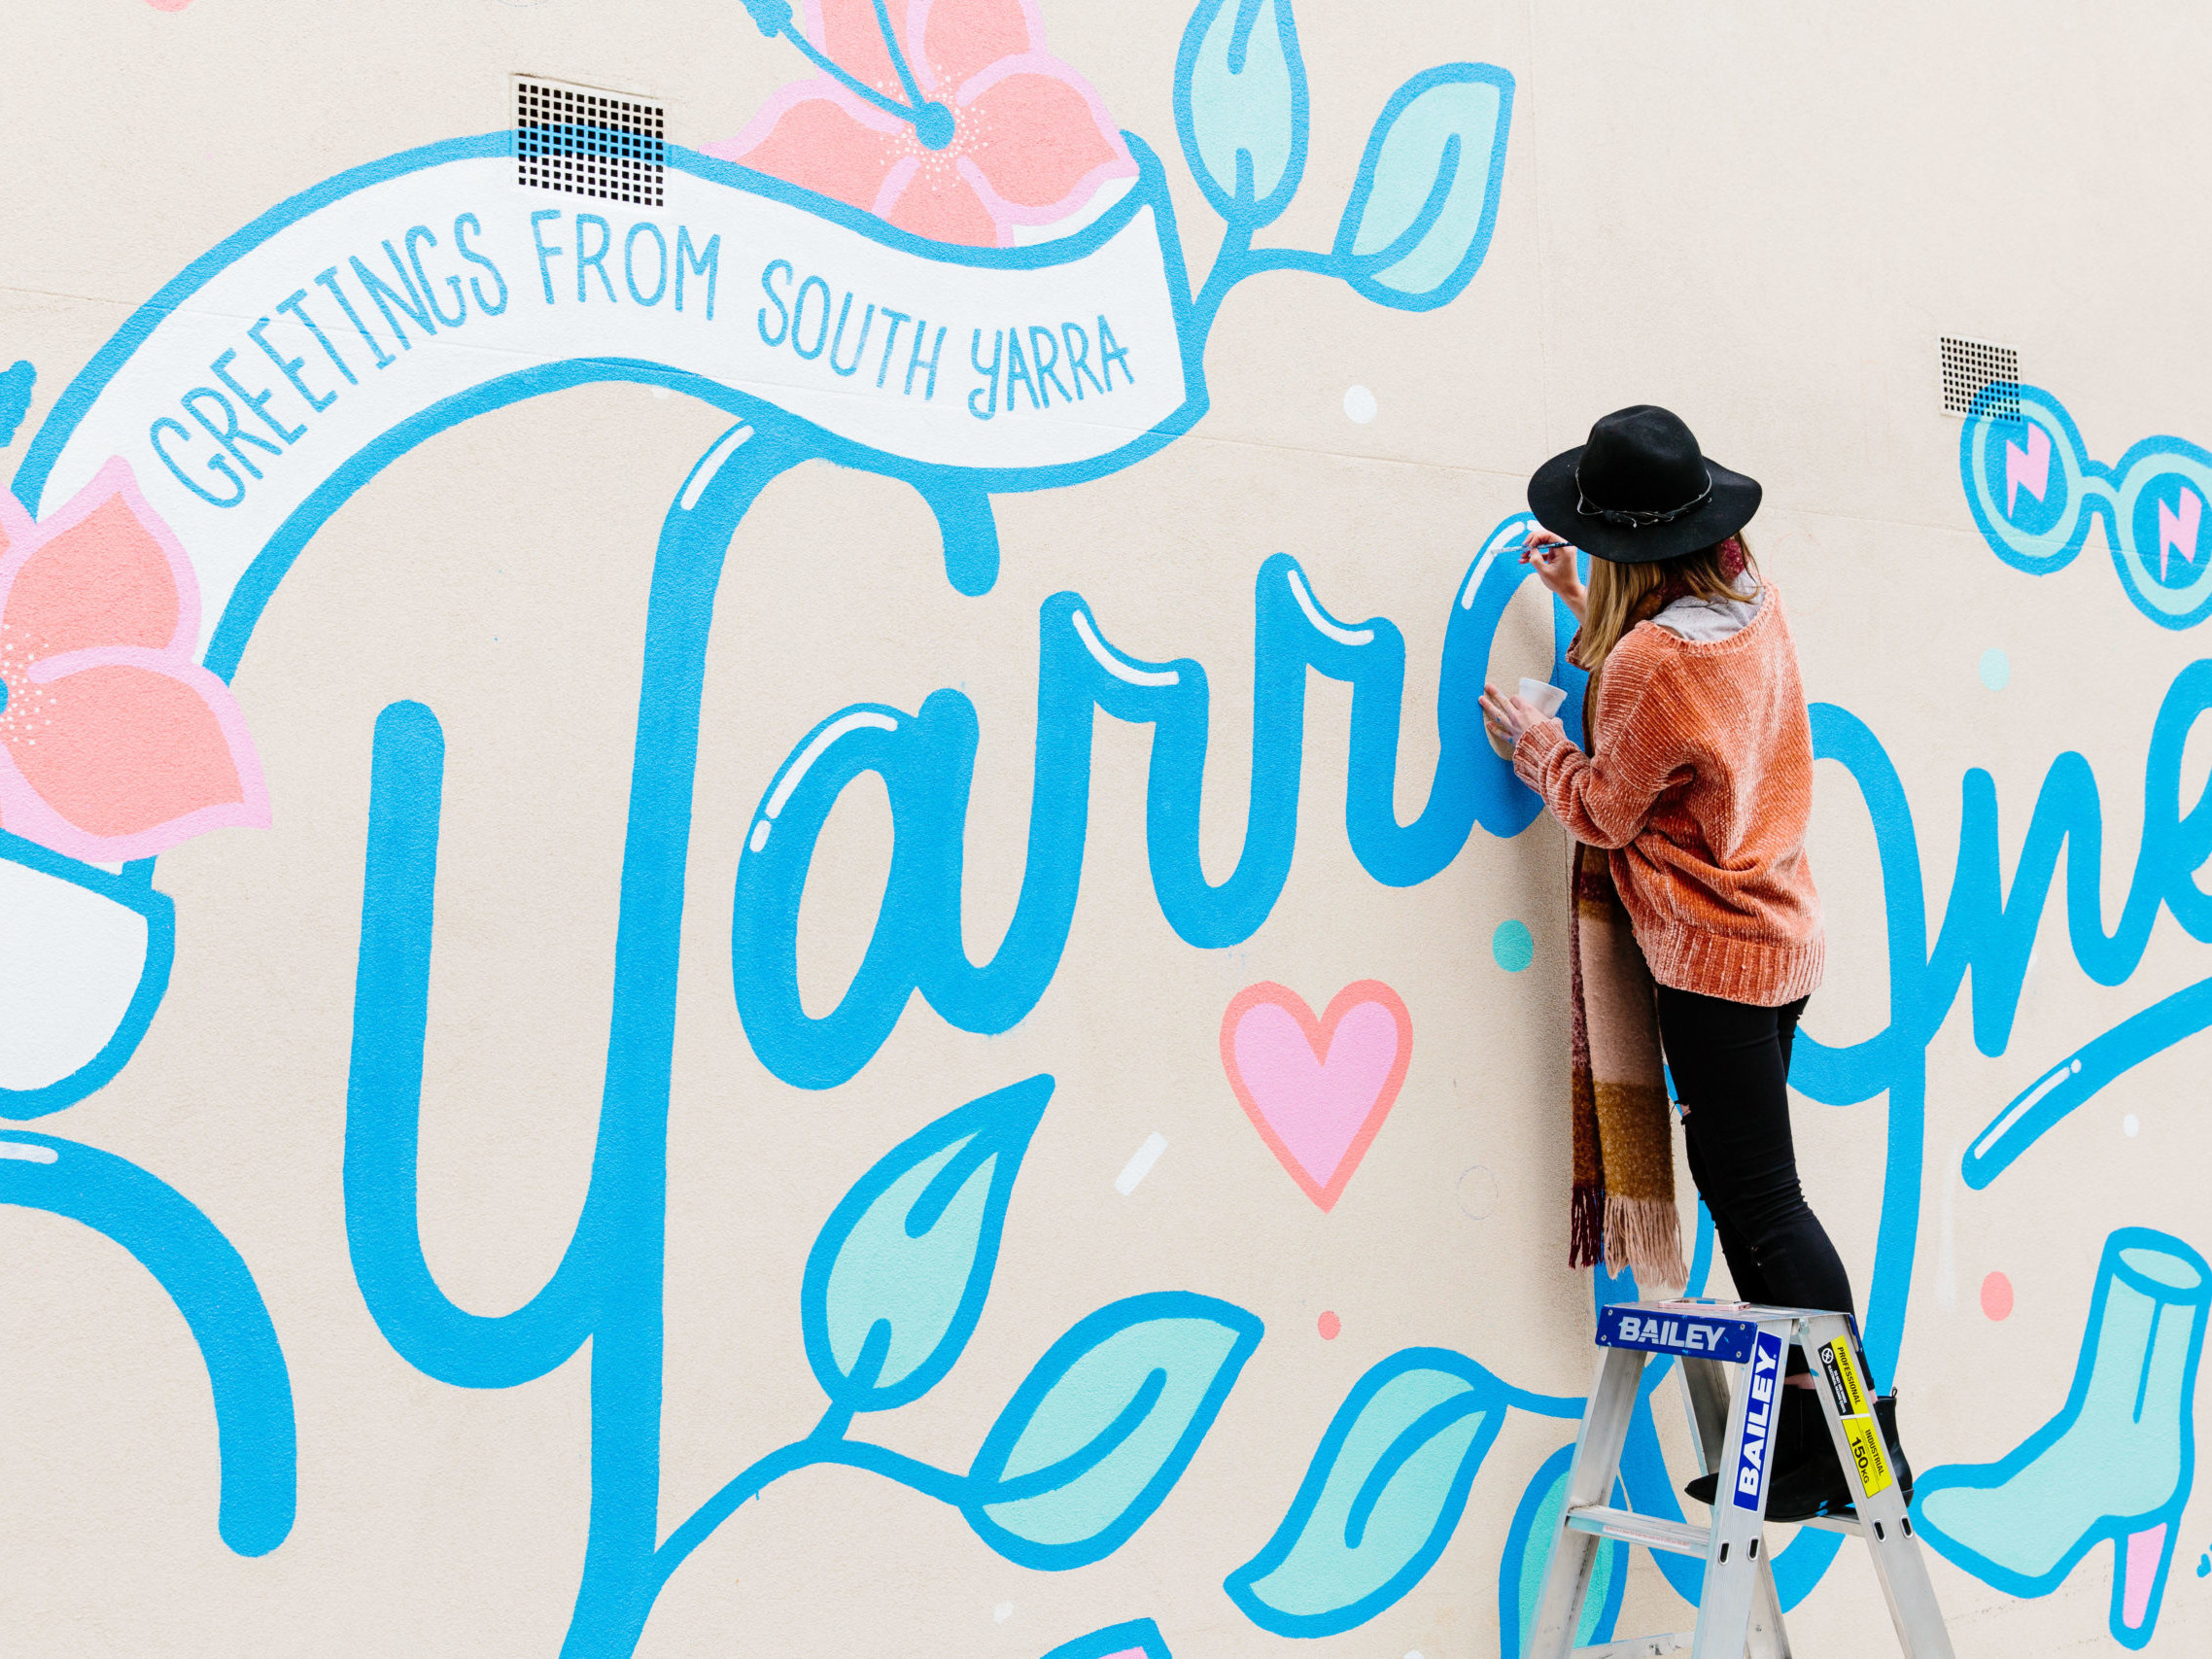 SY Spring Festival by Yarra One, ENGAGE